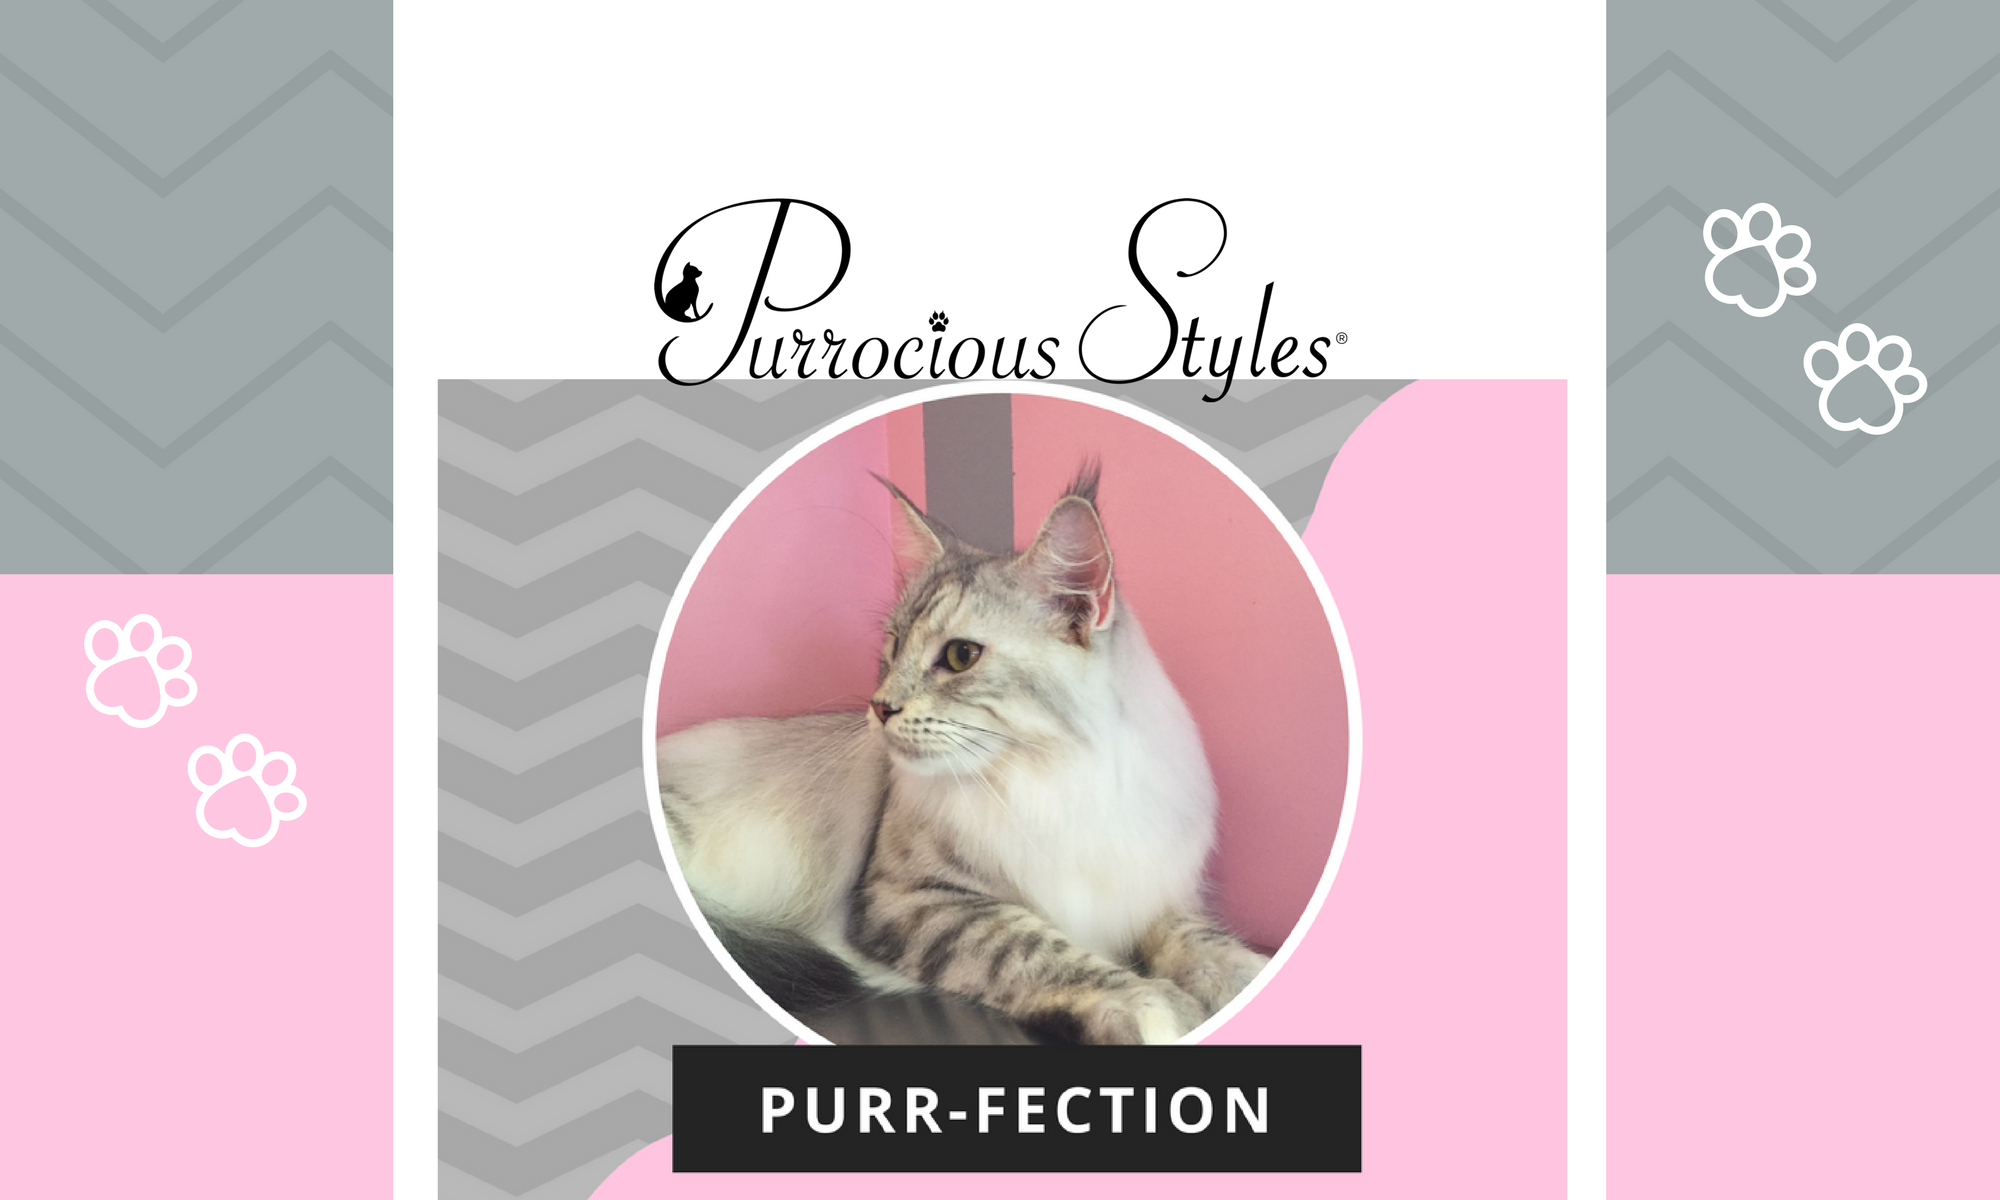 Purrocious Styles Feline Designs